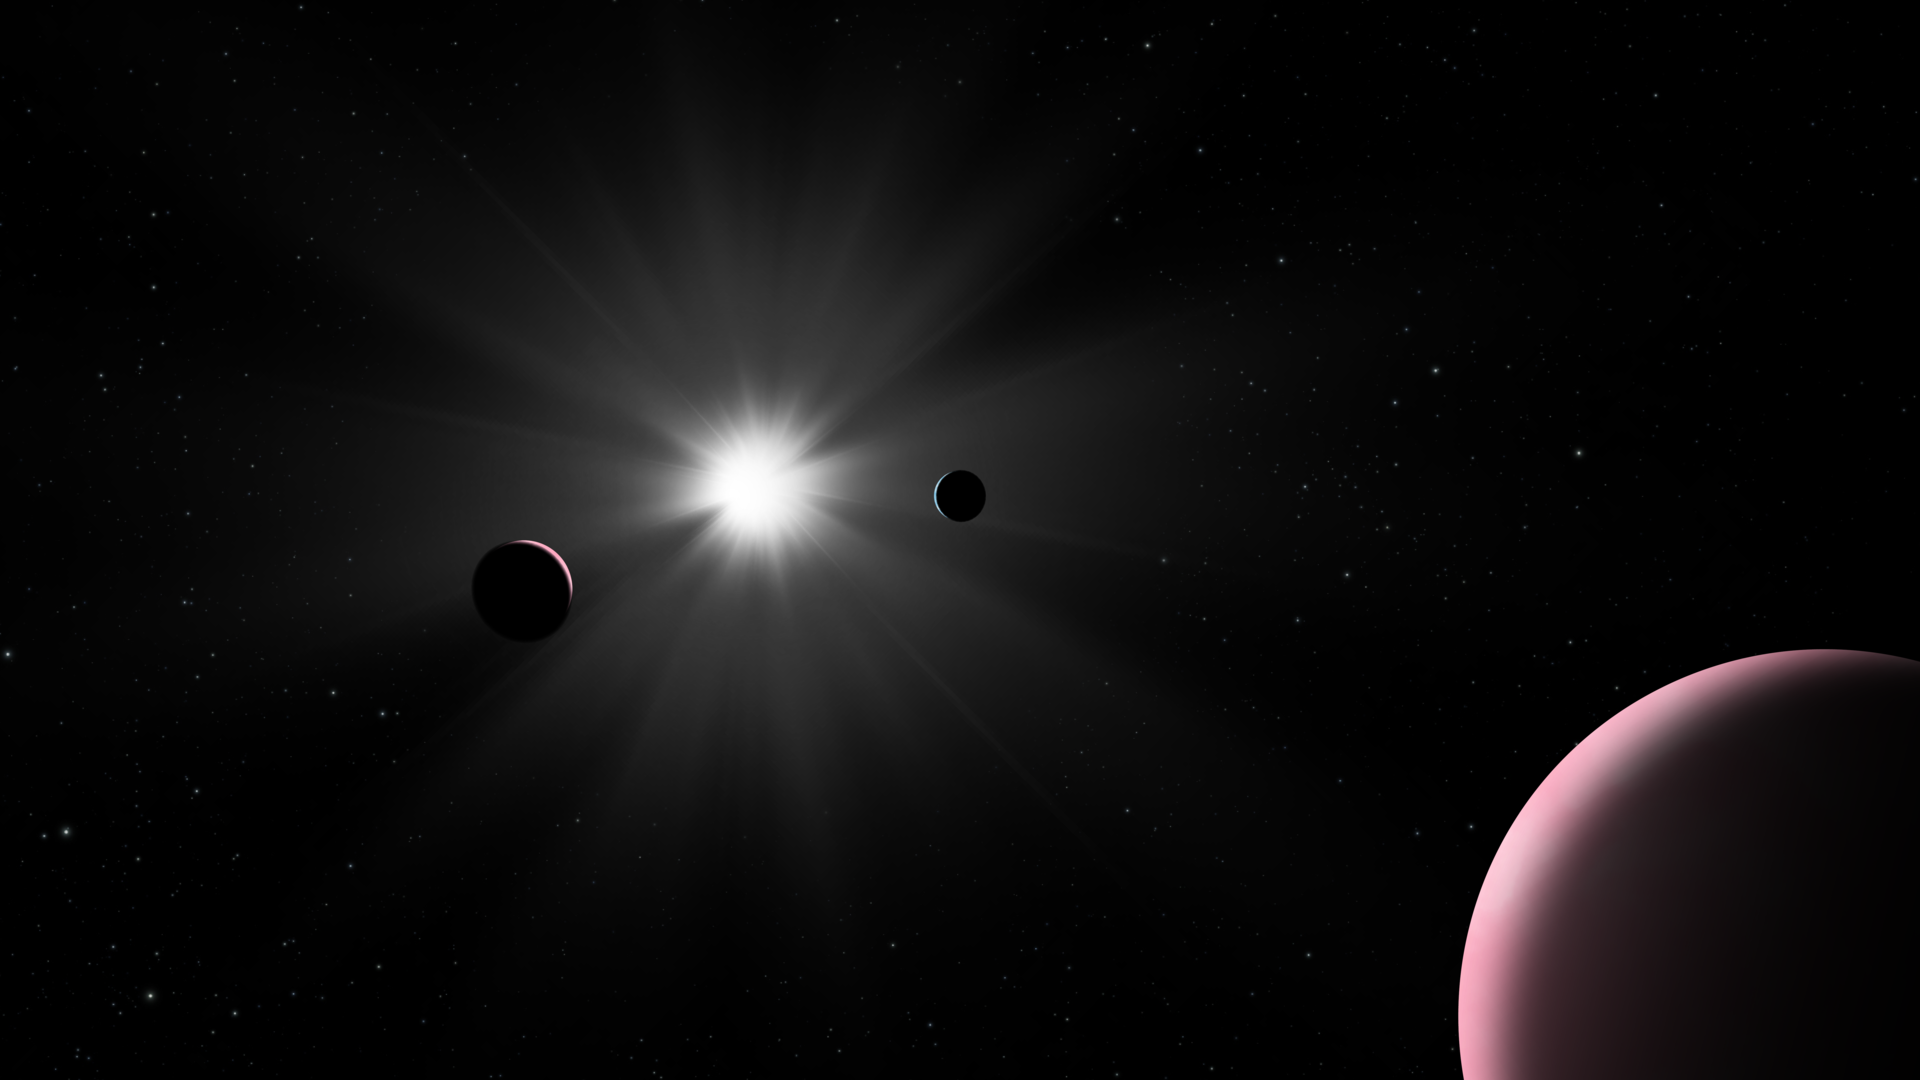 artist_s_impression_of_the_nu2_lupi_planetary_system_pillars.png